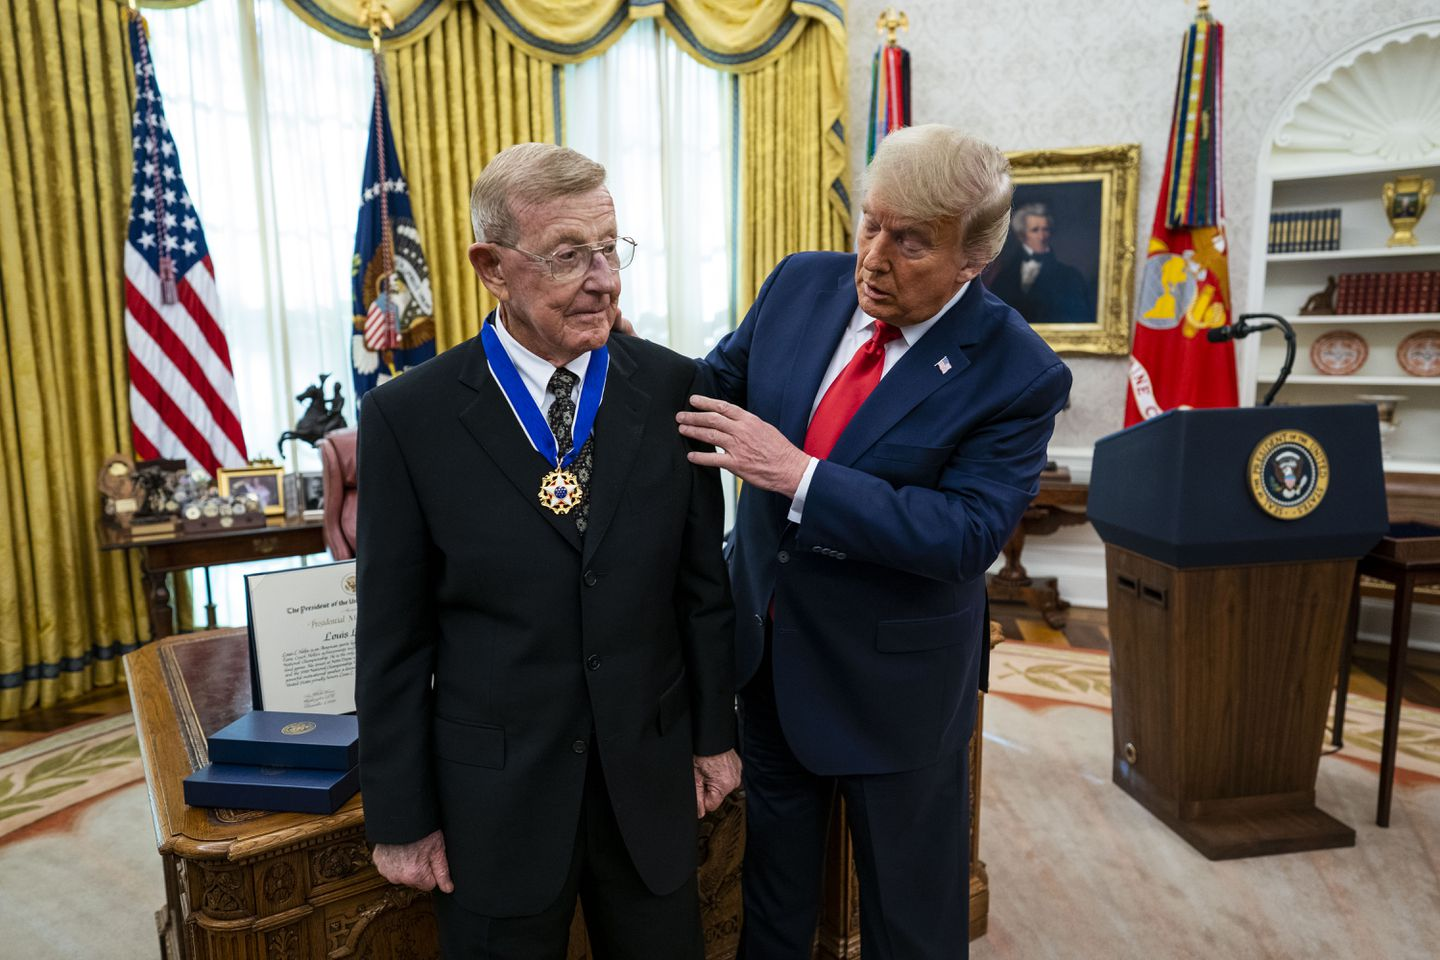 Lou Holtz receives Presidential Medal of Freedom from President Donald Trump